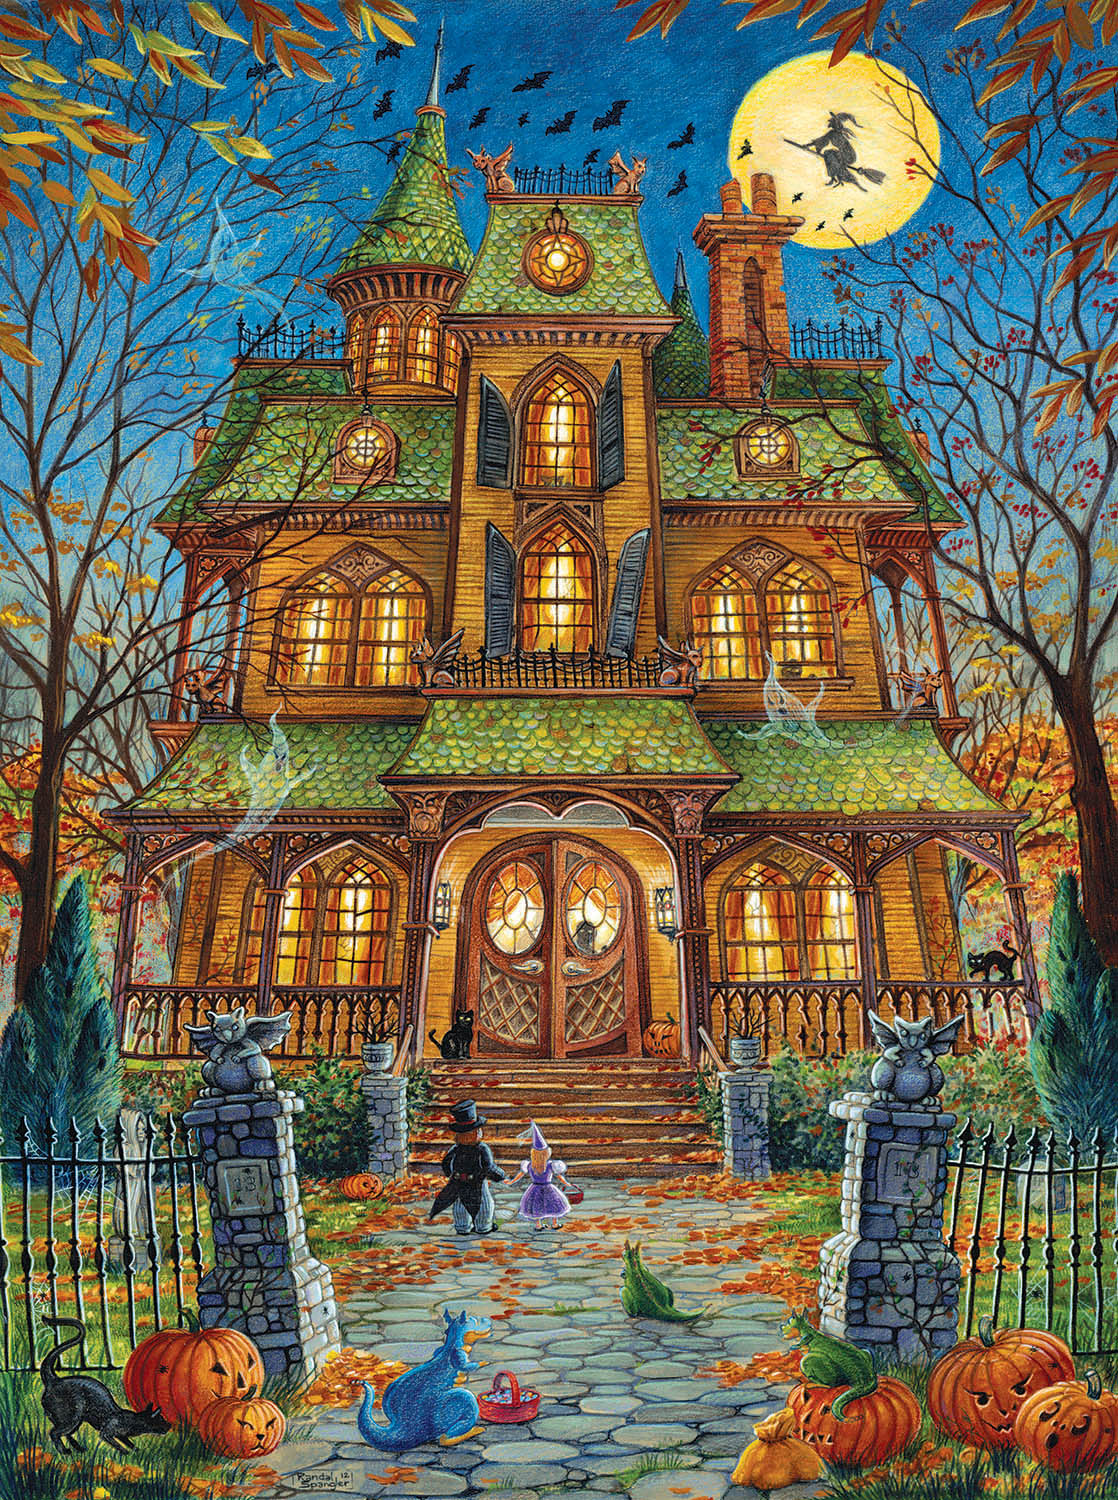 The Trick or Treat House